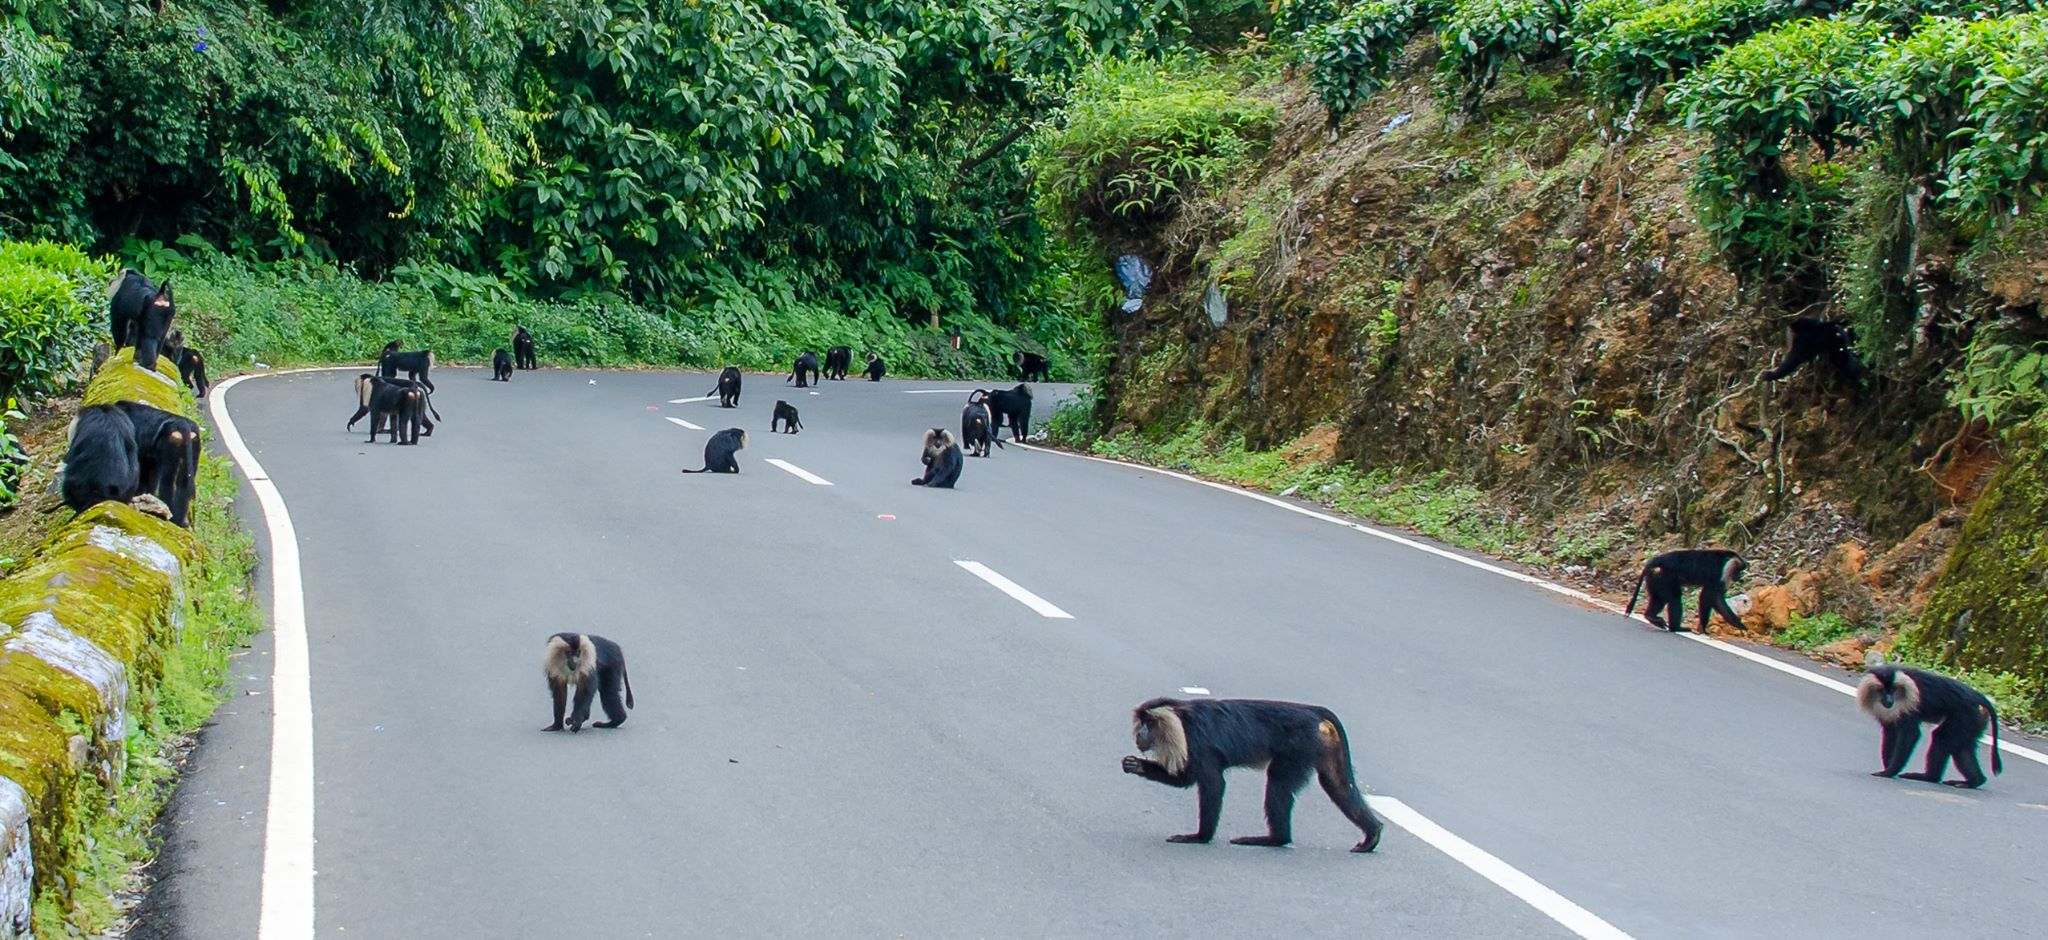 Lion-tailed macaques are social creatures that roam in troops of about 10-25, with a single dominant male. In isolated areas, however, researchers have noticed larger groups of 30-60 members that may have multiple males and females. Some posit that they may be seeking safety in numbers. In some parts of Kerala and Tamil Nadu, large troops can be seen near highways, scavenging for food to supplement their fast-disappearing traditional diets. 